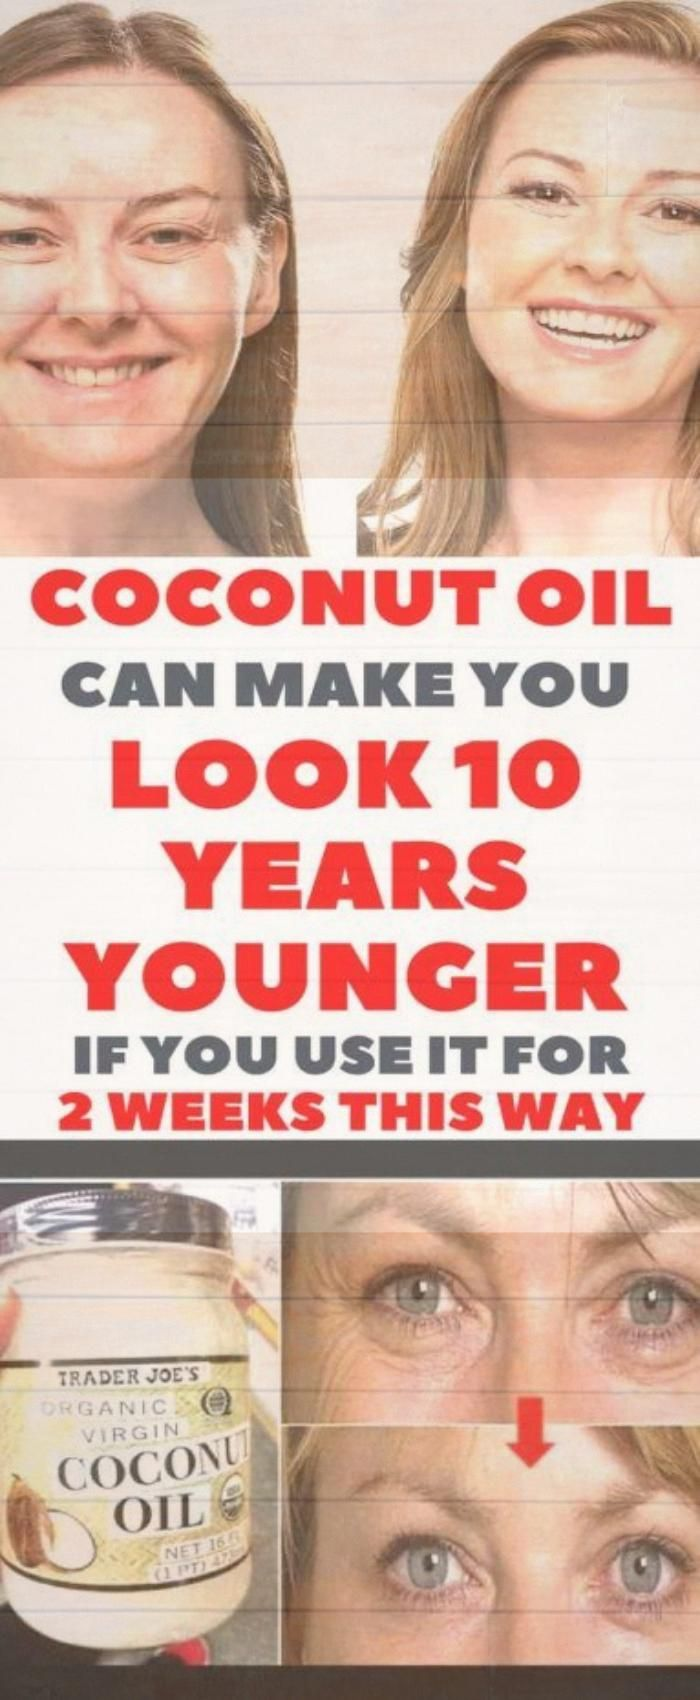 Coconut Oil Can Make You Look 10 Years Younger If You Use It For 2 Weeks This Way #health #fitness #...